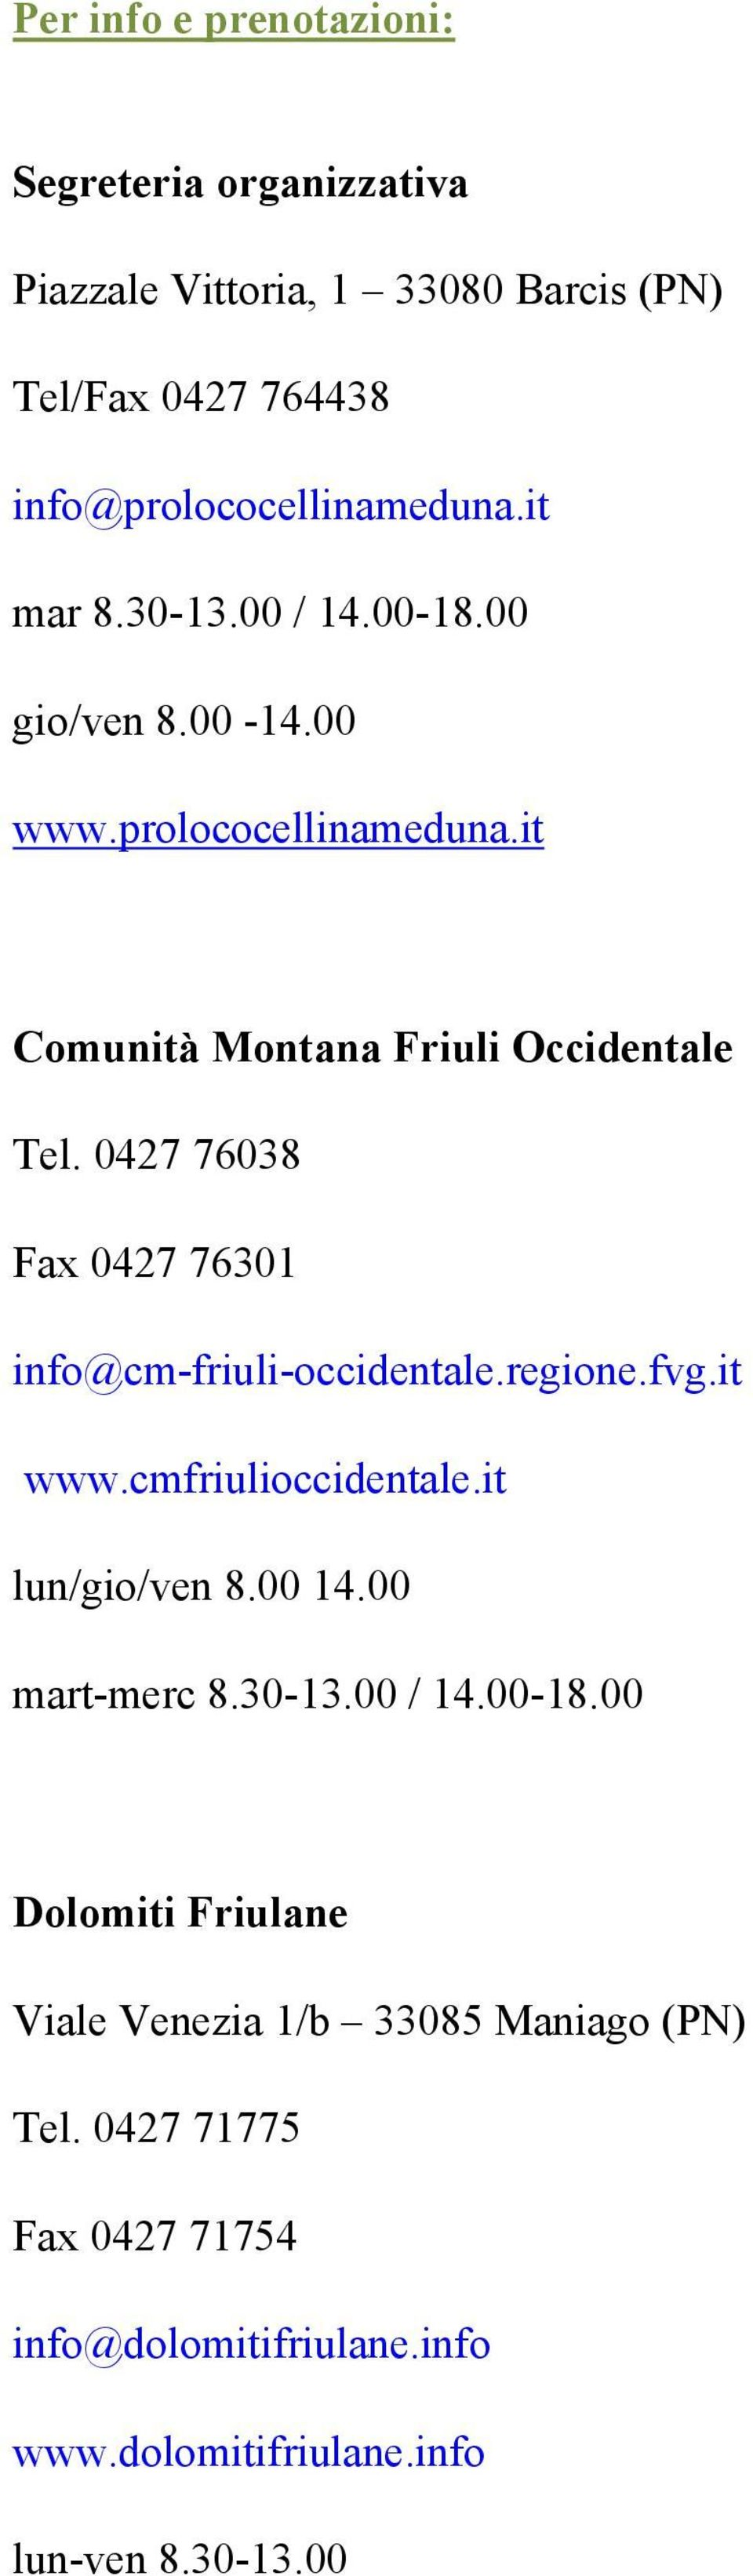 0427 76038 Fax 0427 76301 info@cm-friuli-occidentale.regione.fvg.it www.cmfriulioccidentale.it lun/gio/ven 8.00 14.00 mart-merc 8.30-13.